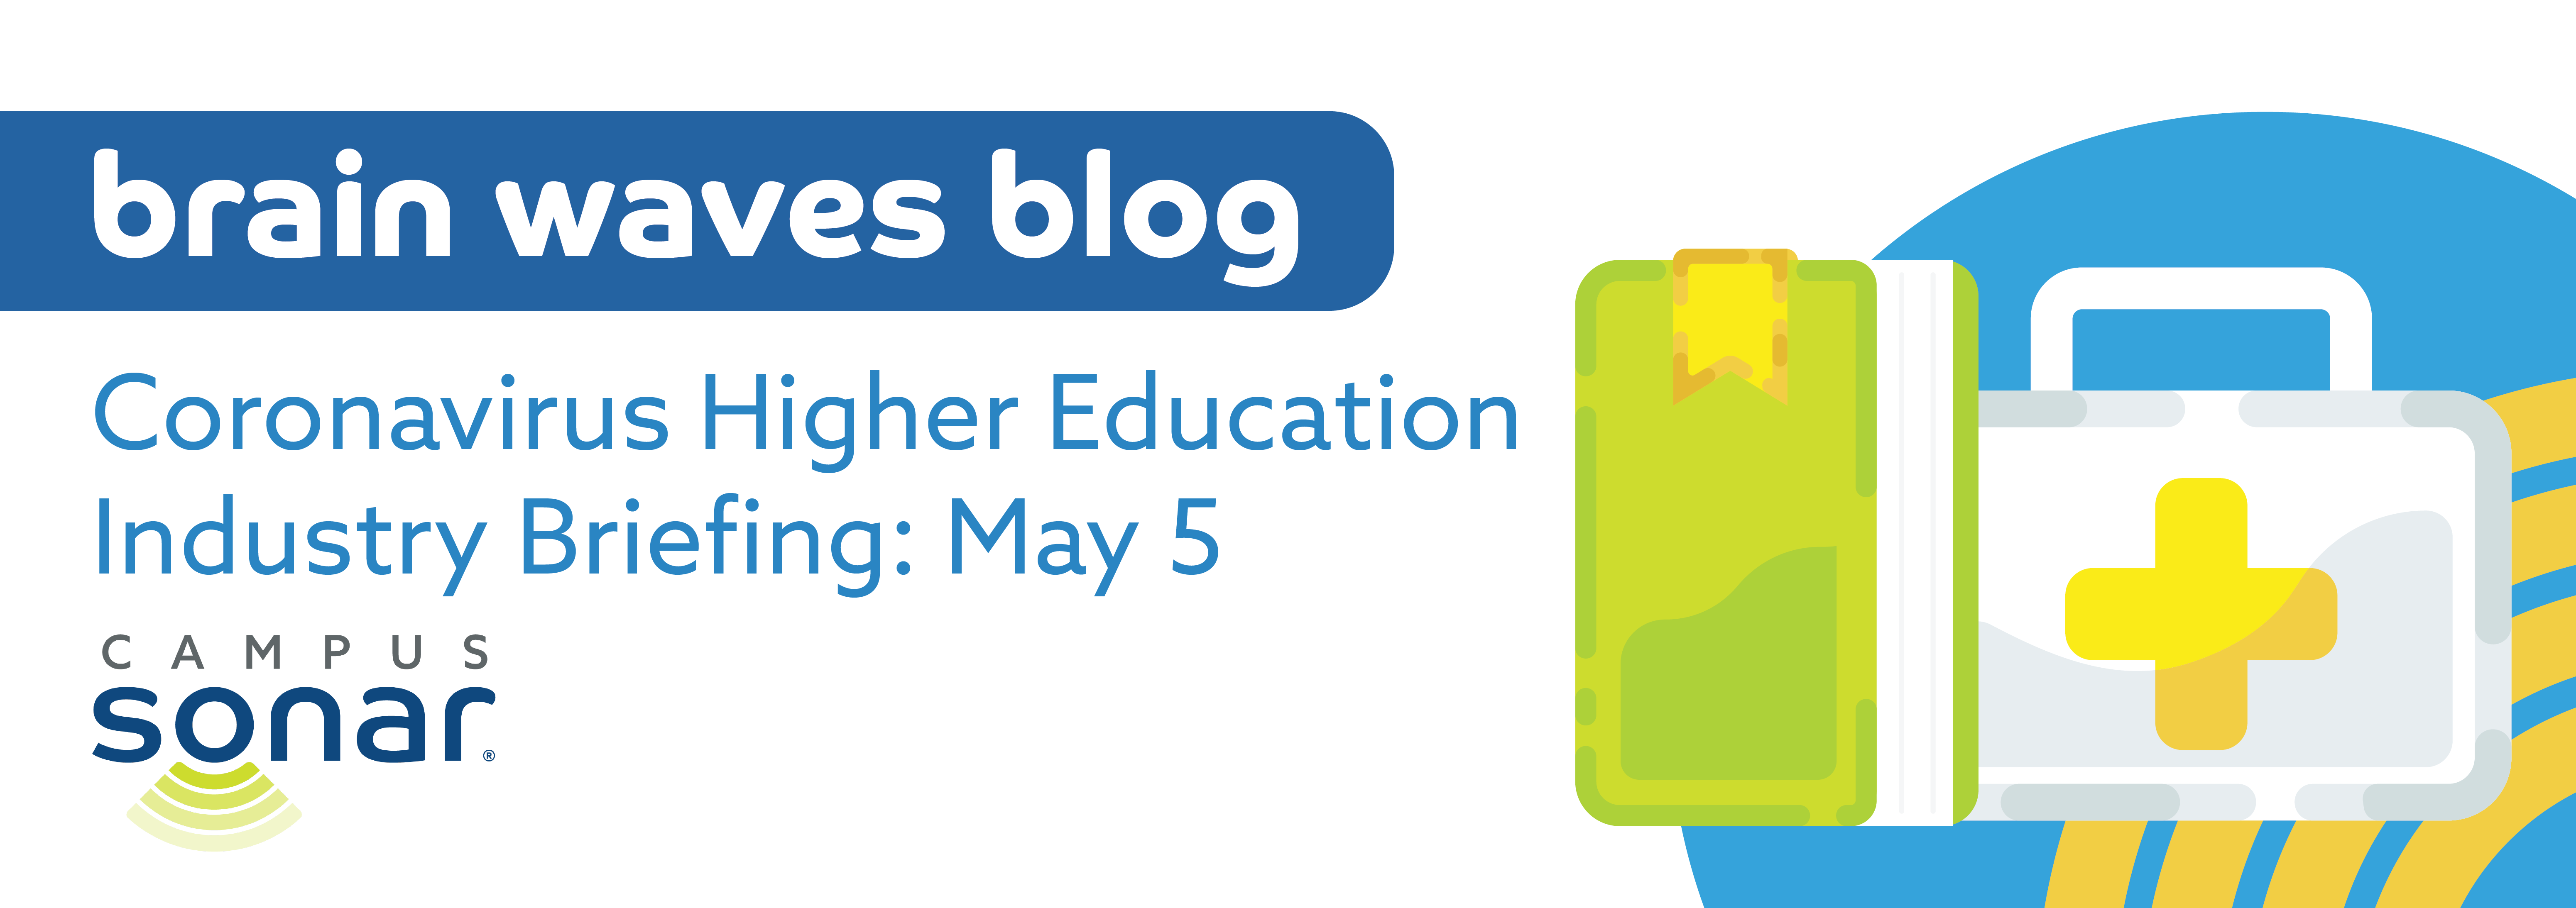 Blog post image for Coronavirus Higher Education Industry Briefing: May 5